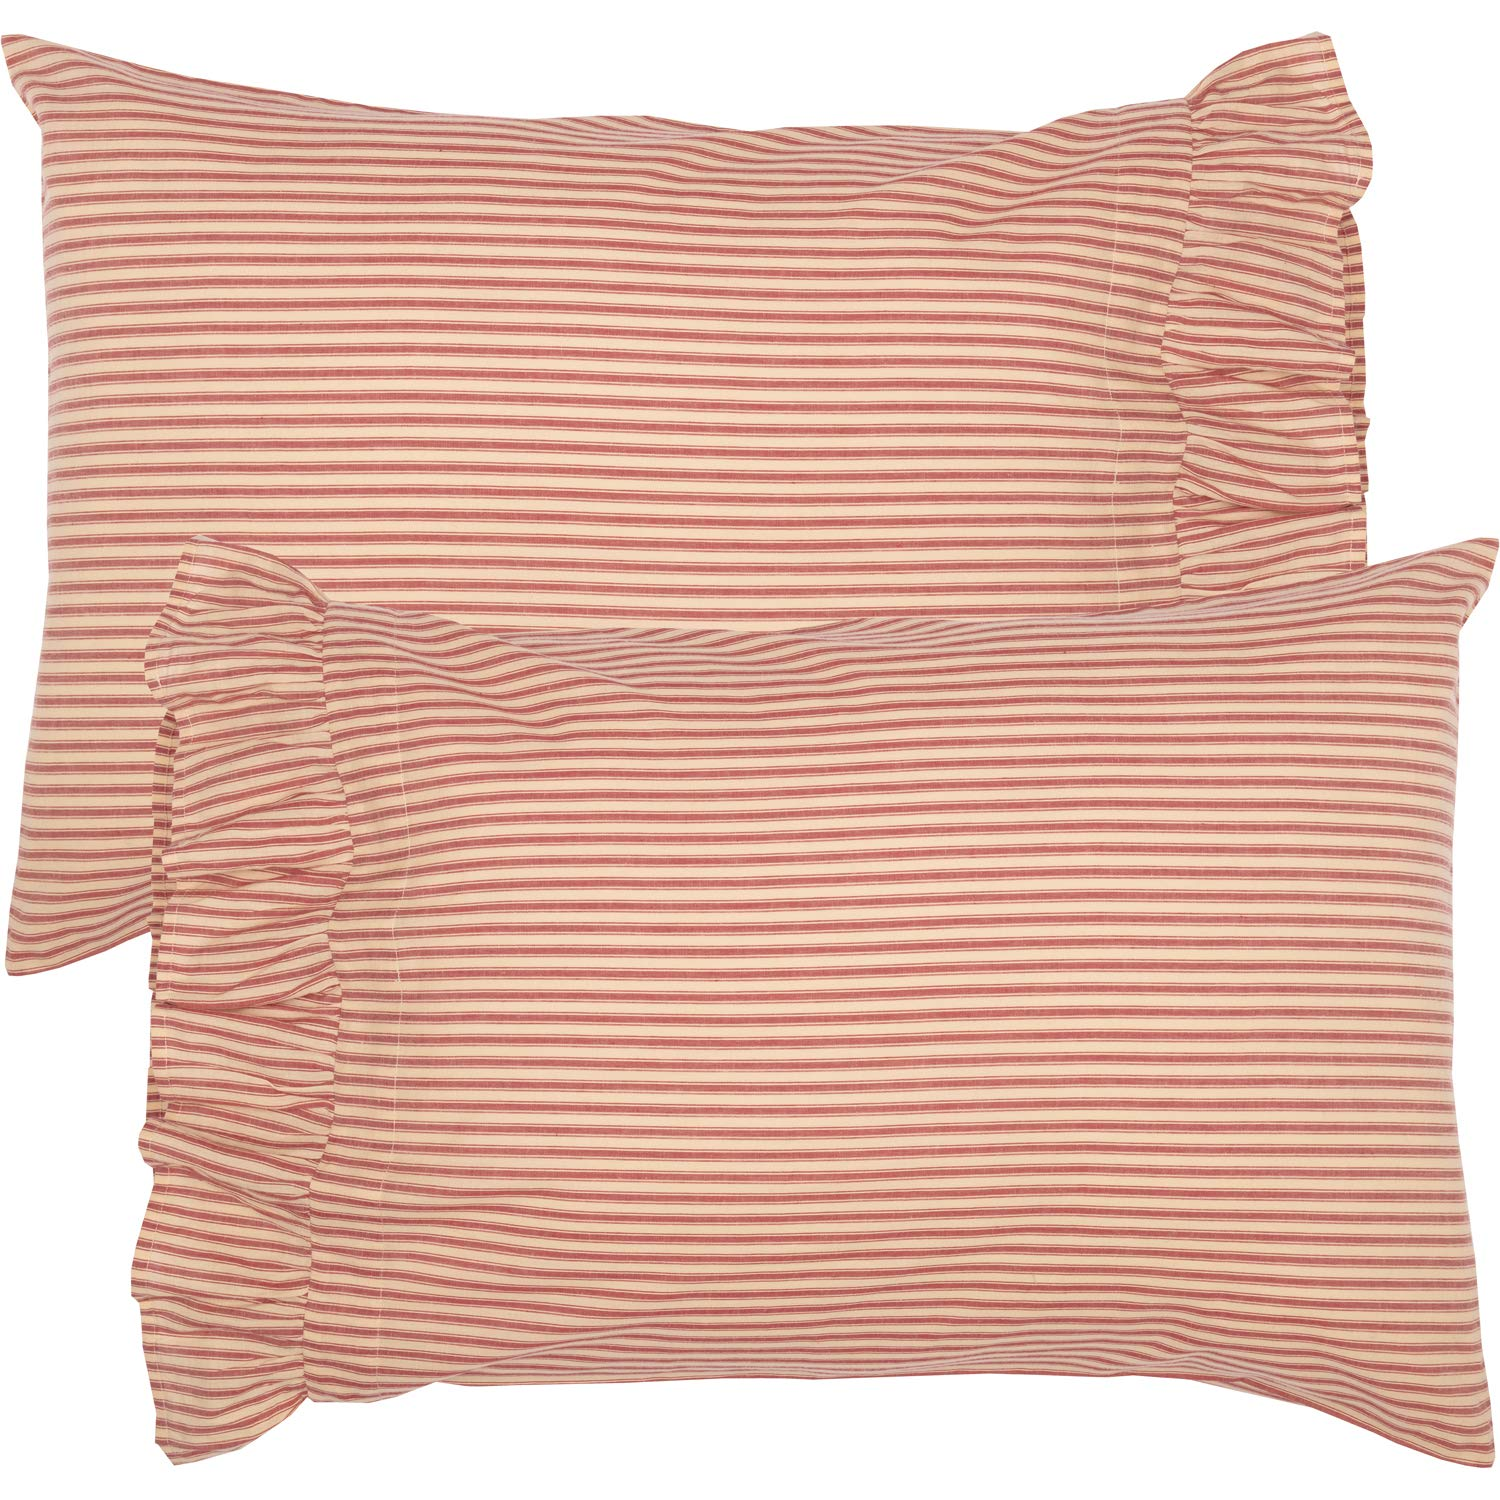 VHC Brands Farmhouse Bedding Sawyer Mill Ticking Cotton Striped Standard Pillow Case Set of 2, Red Country